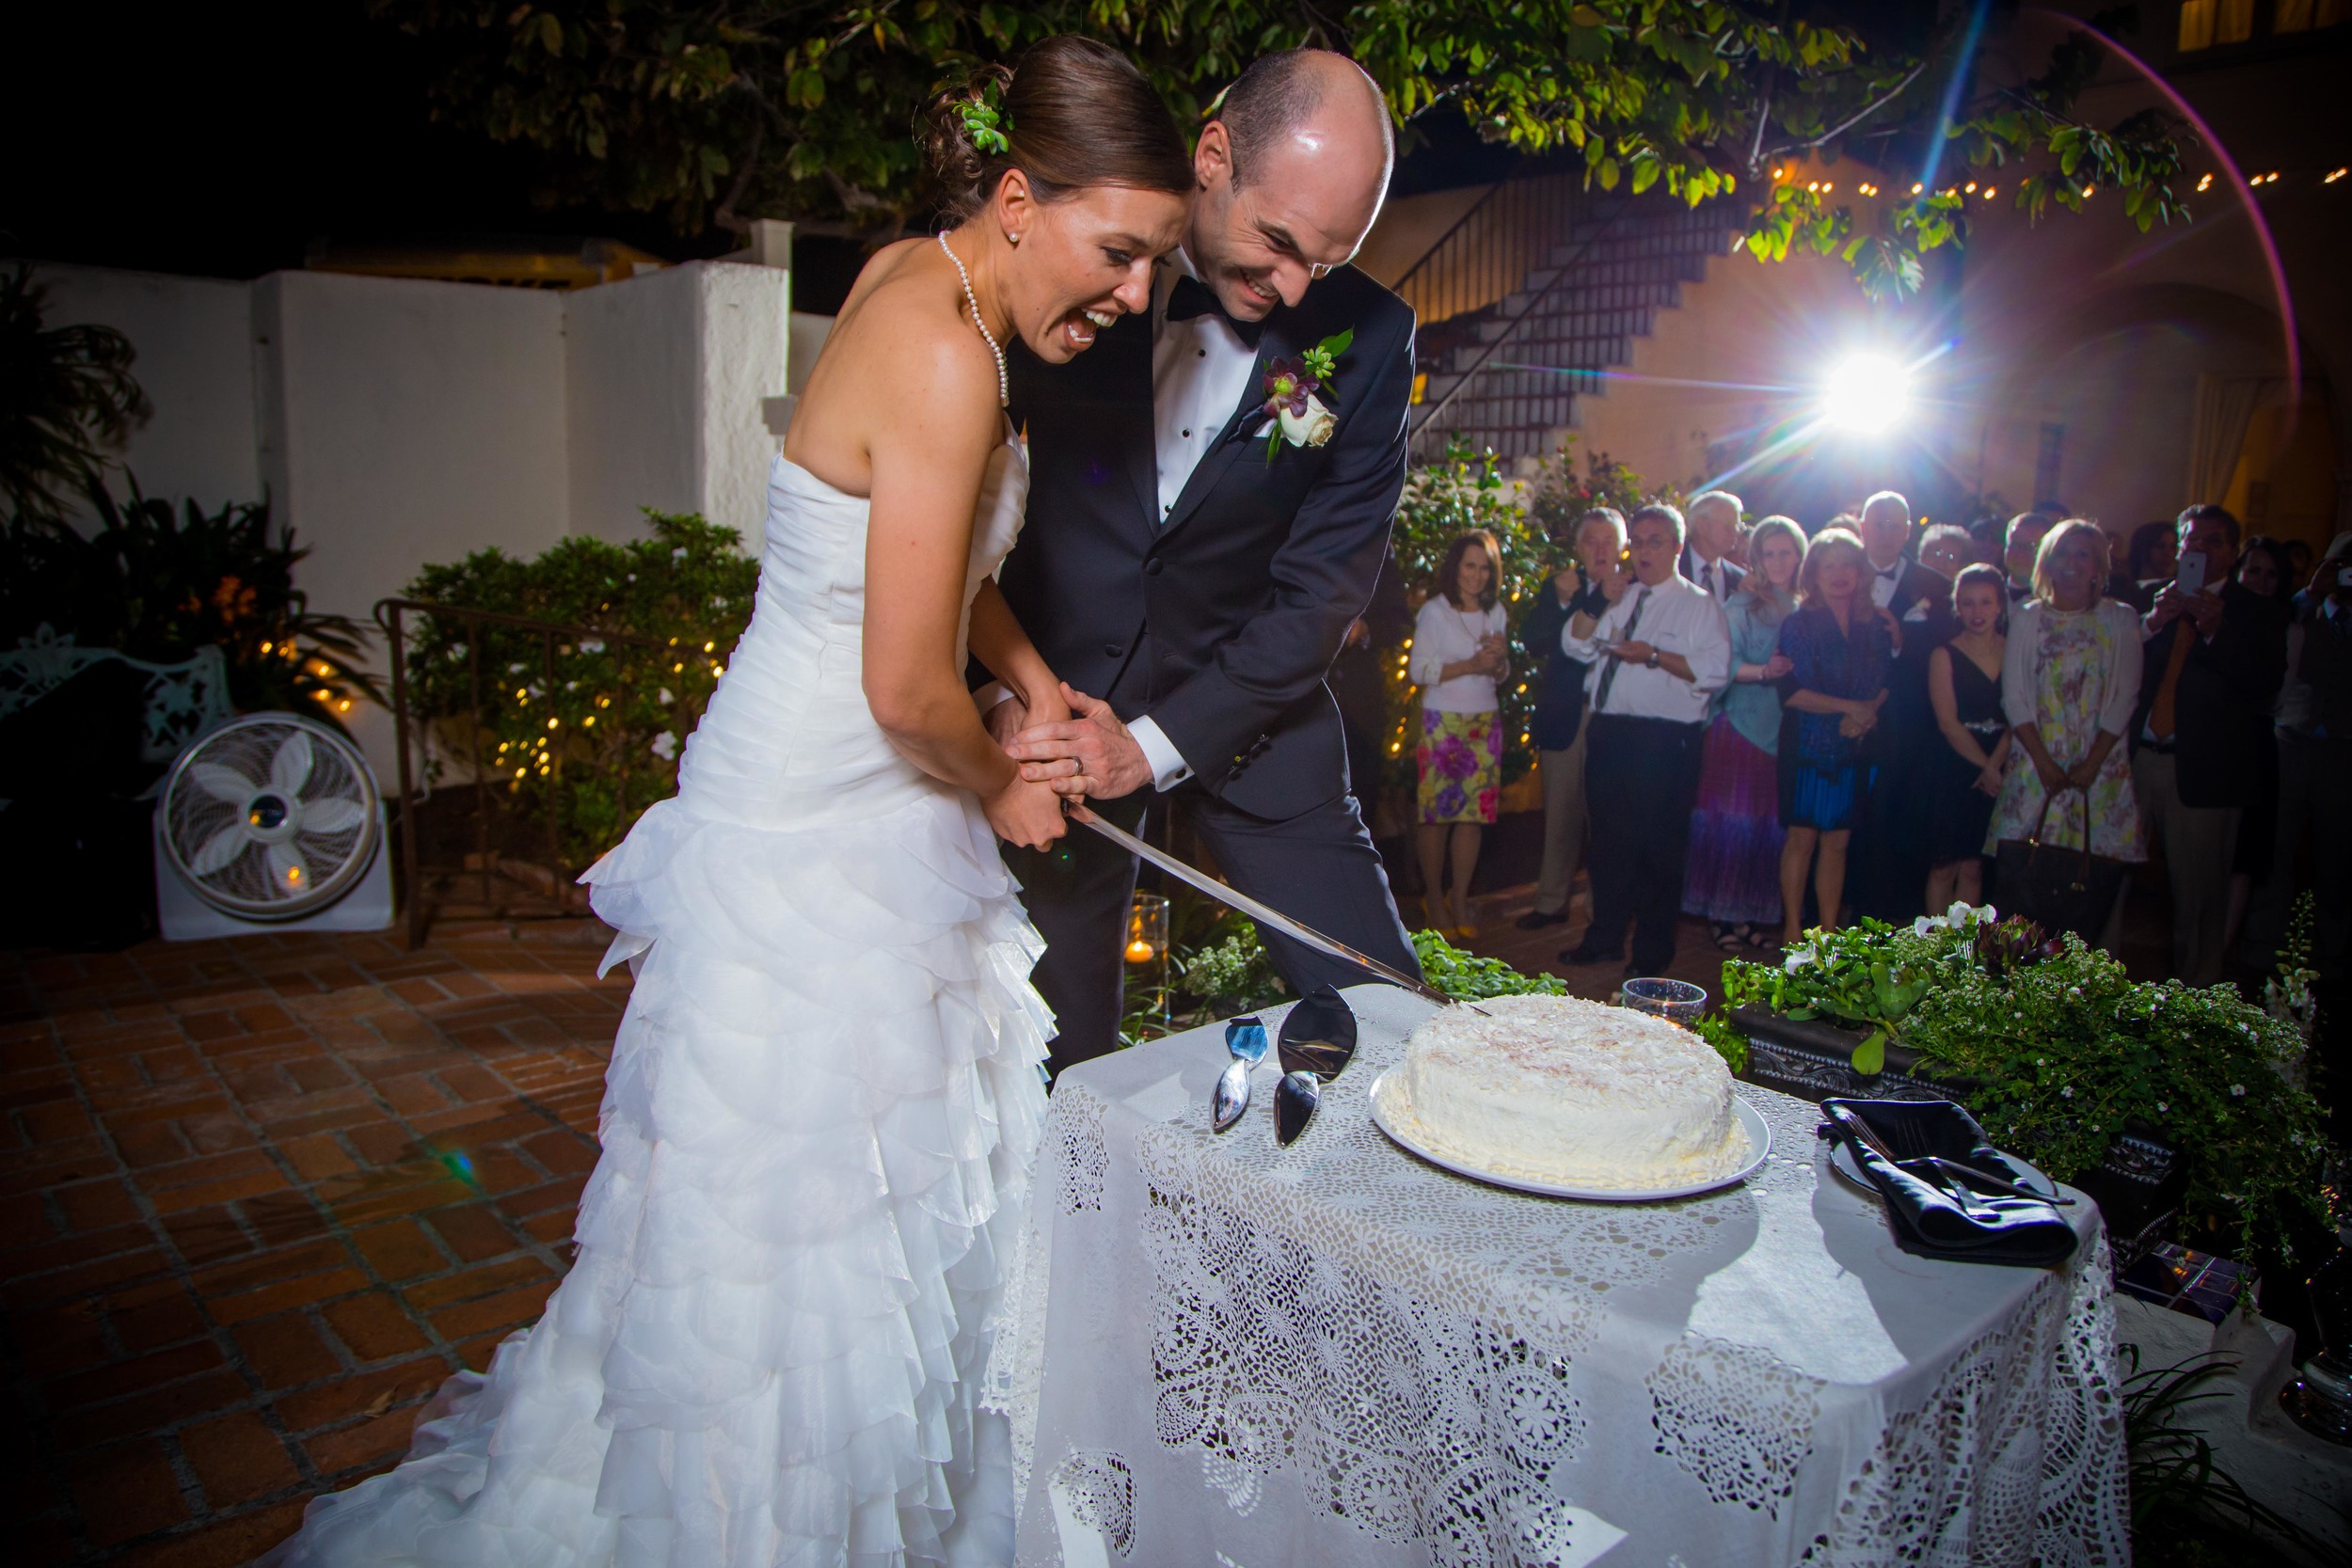 Cutting the cake with a sword... awesome.